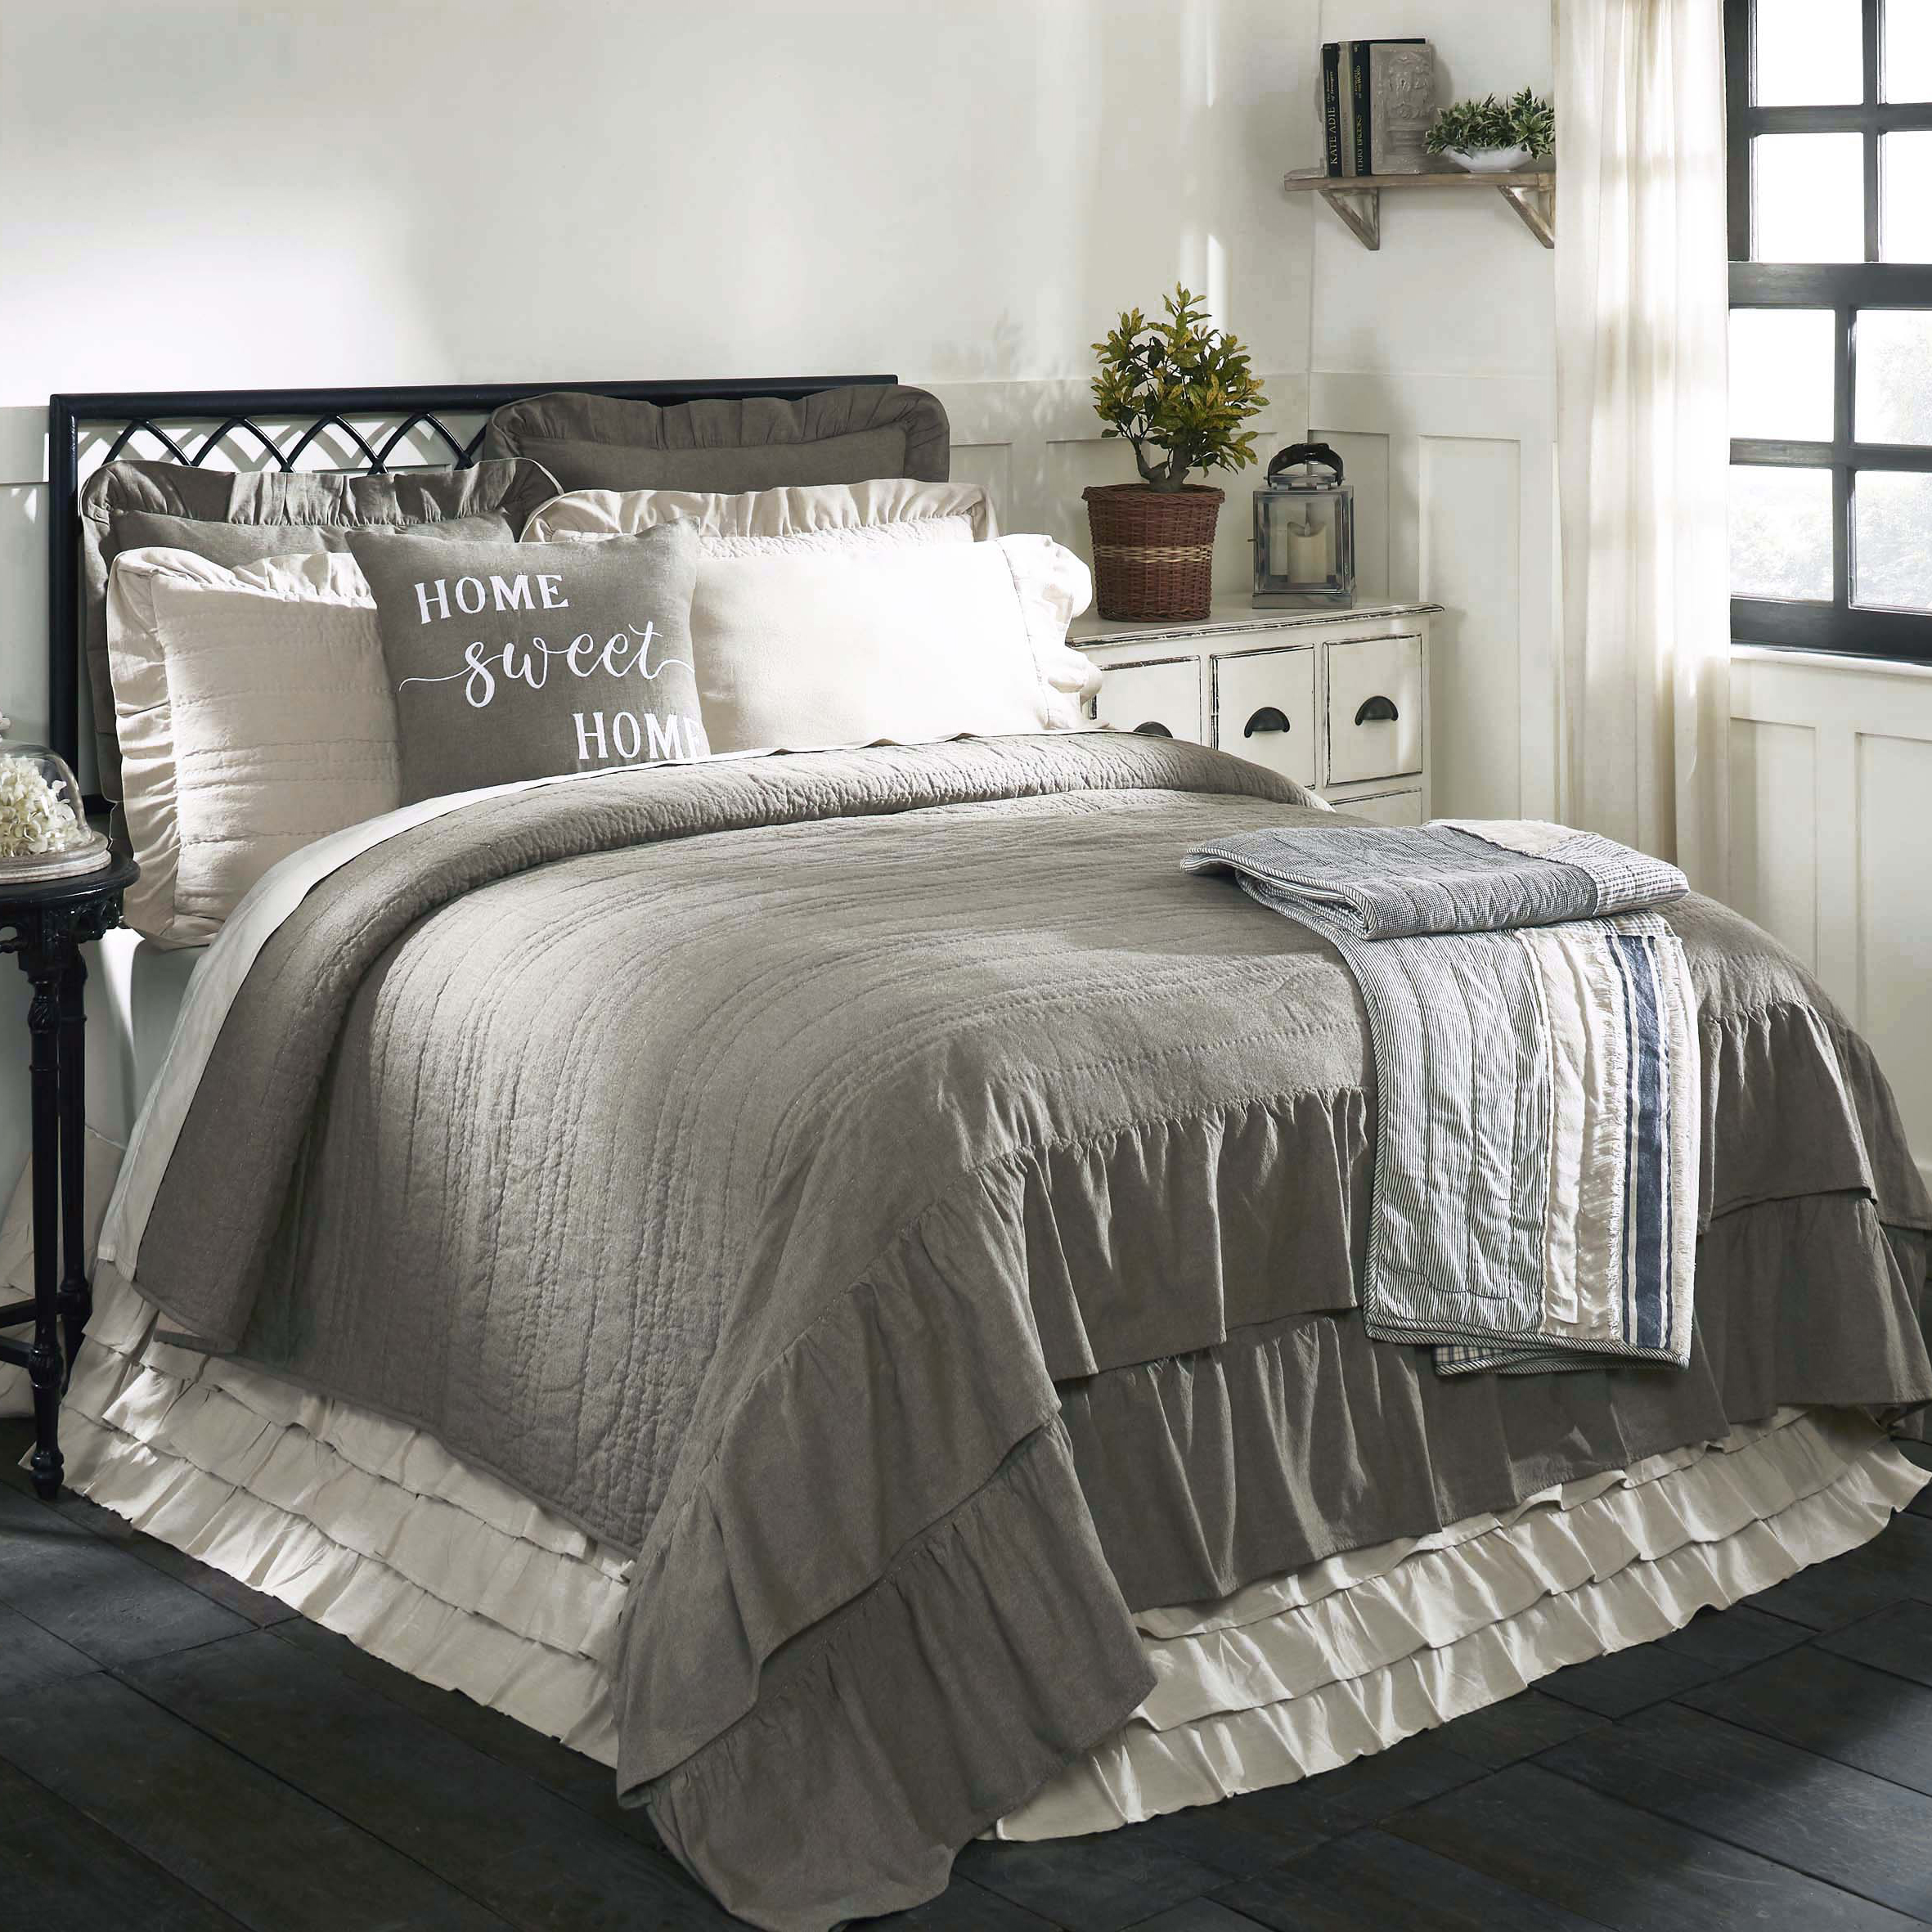 home quilt two tone quilted products bedspread linen img hallstrom